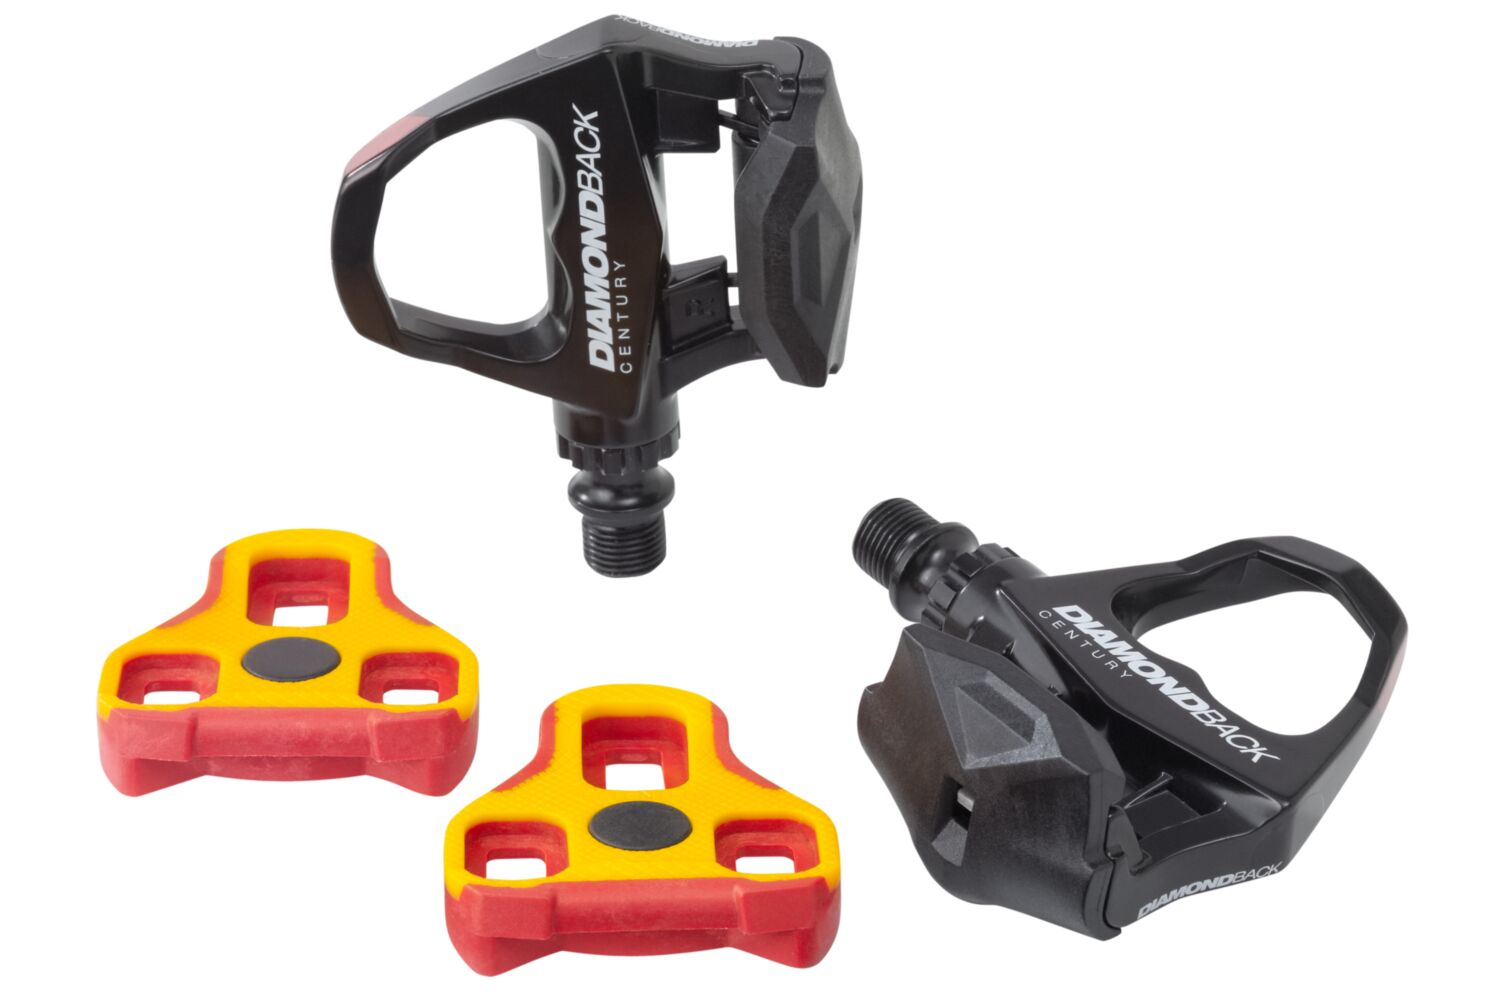 Century Road Clipless Pedals